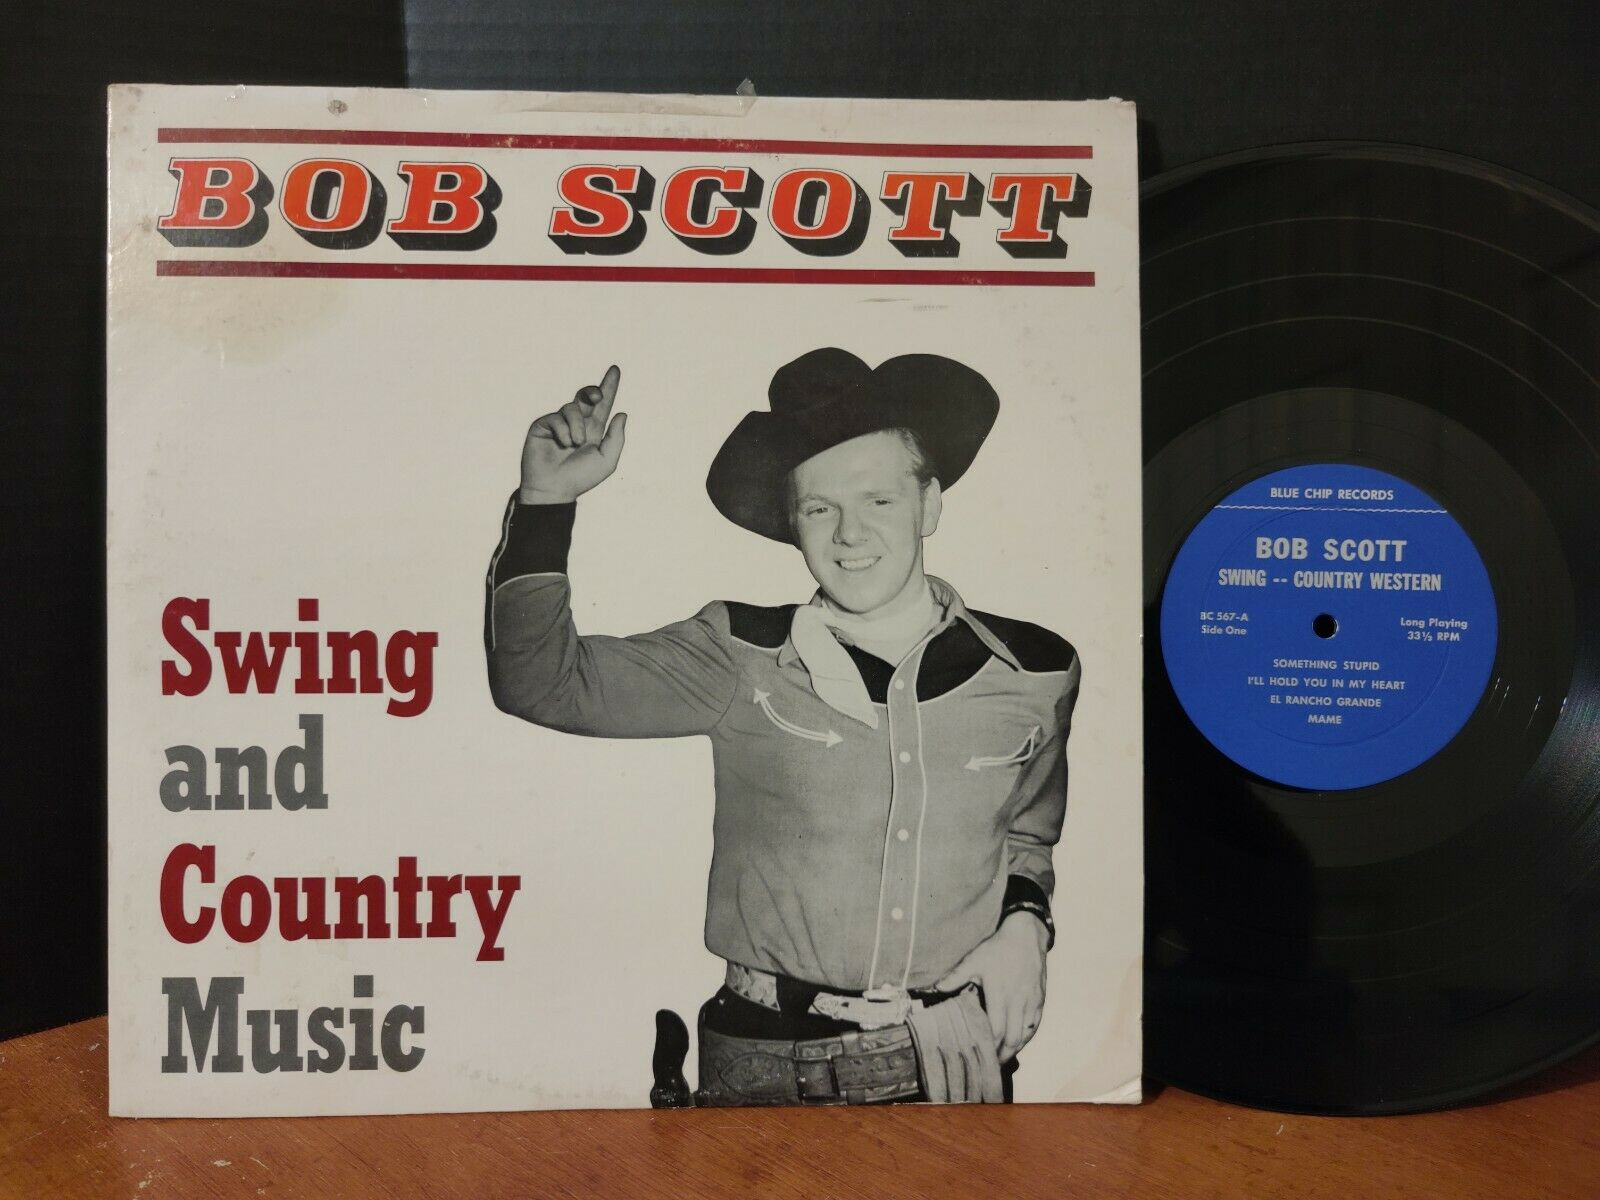 BOB SCOTT - SWING AND COUNTRY WESTERN Vinyl LP Private Press Blue Chip Records